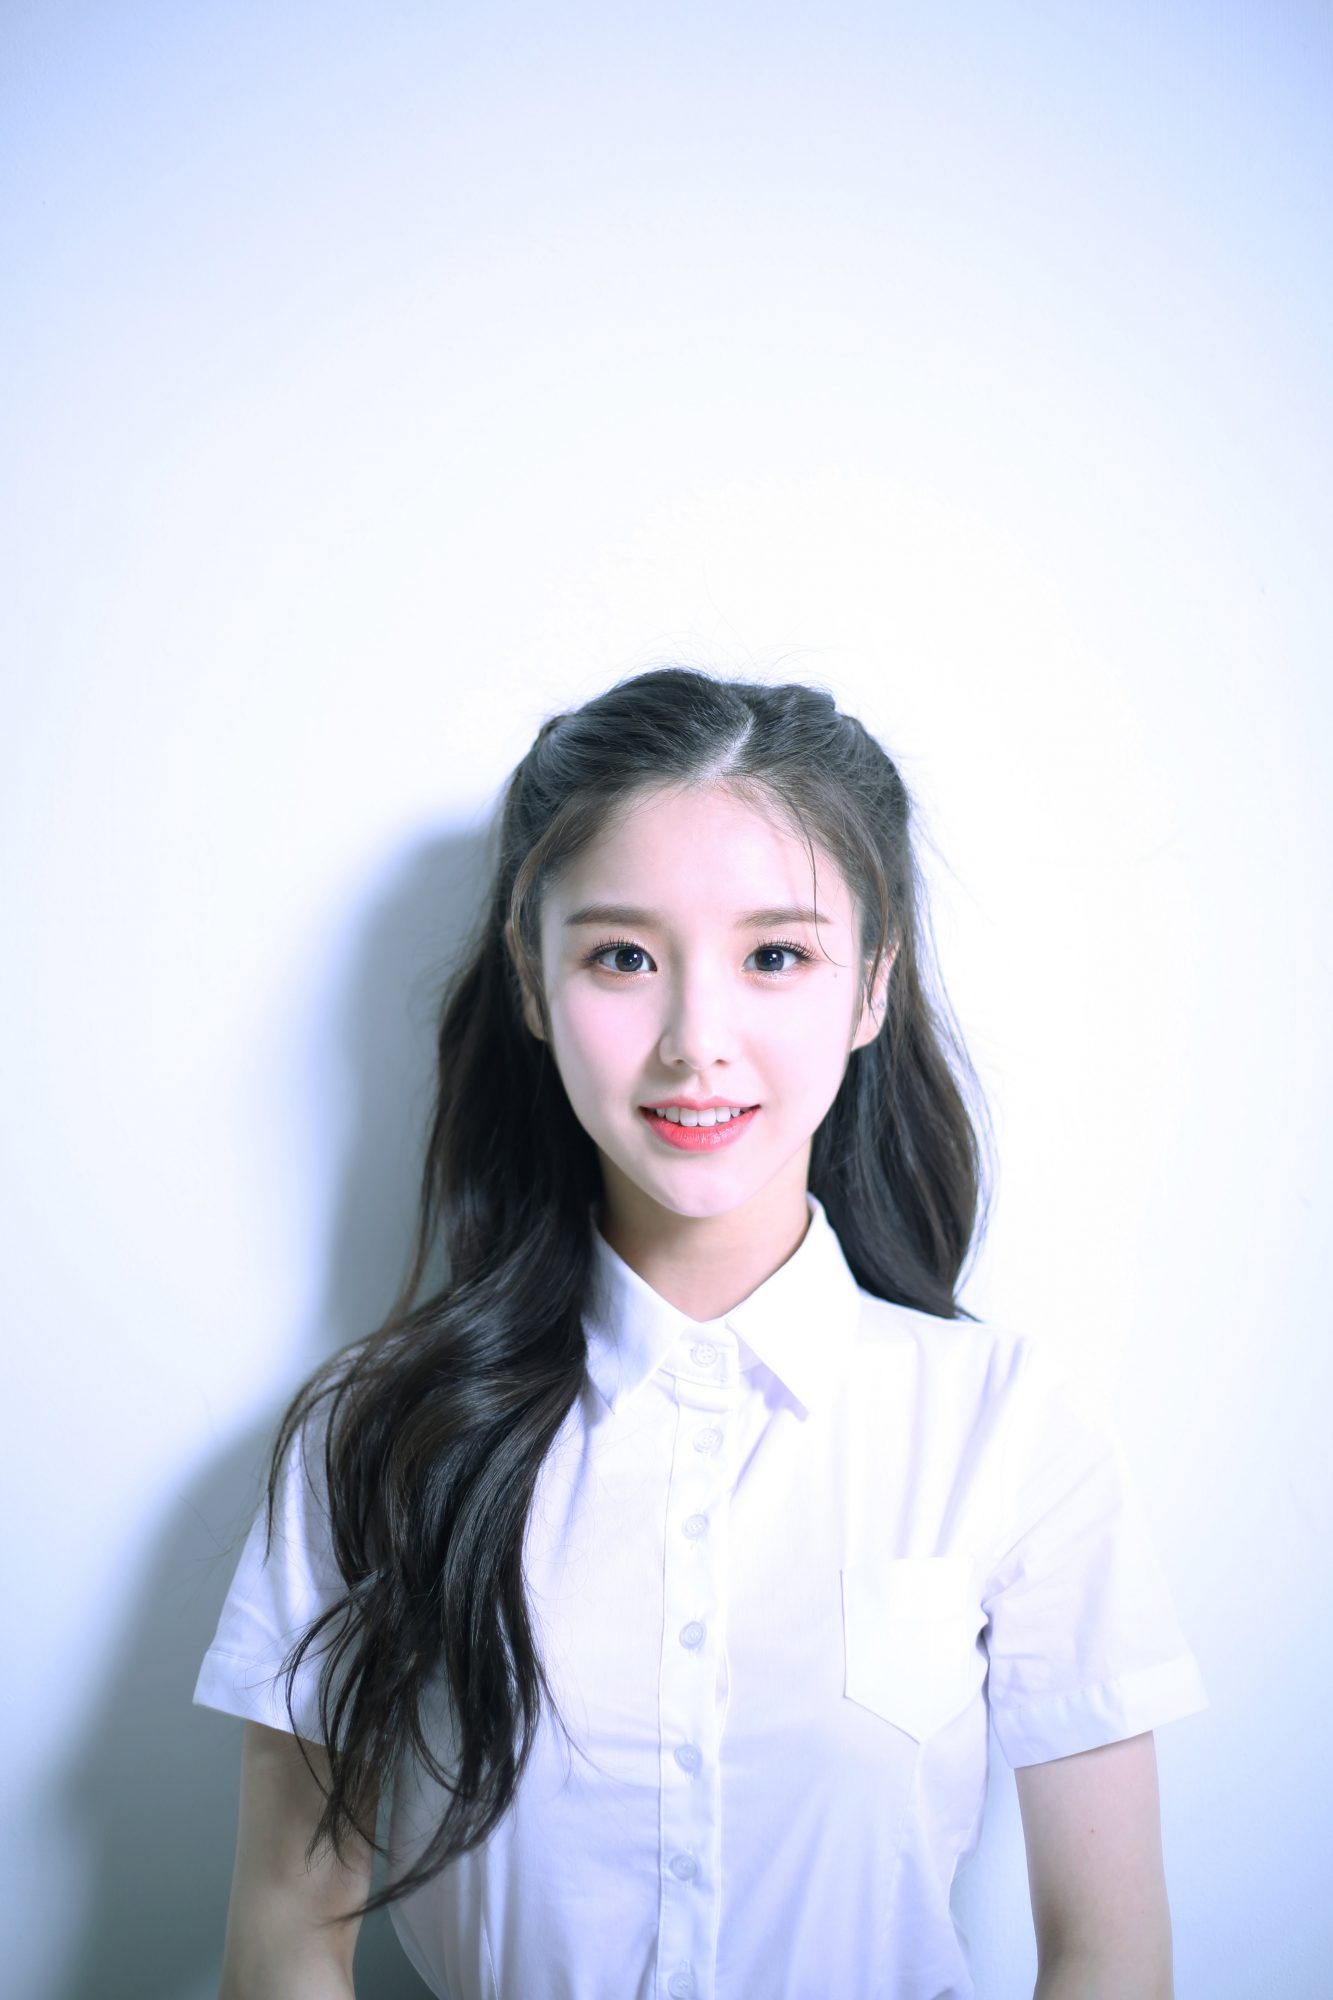 Wallpaper Hd For Mobile Free Download Girl Loona Debut Hr Hd Profile Photos K Pop Database